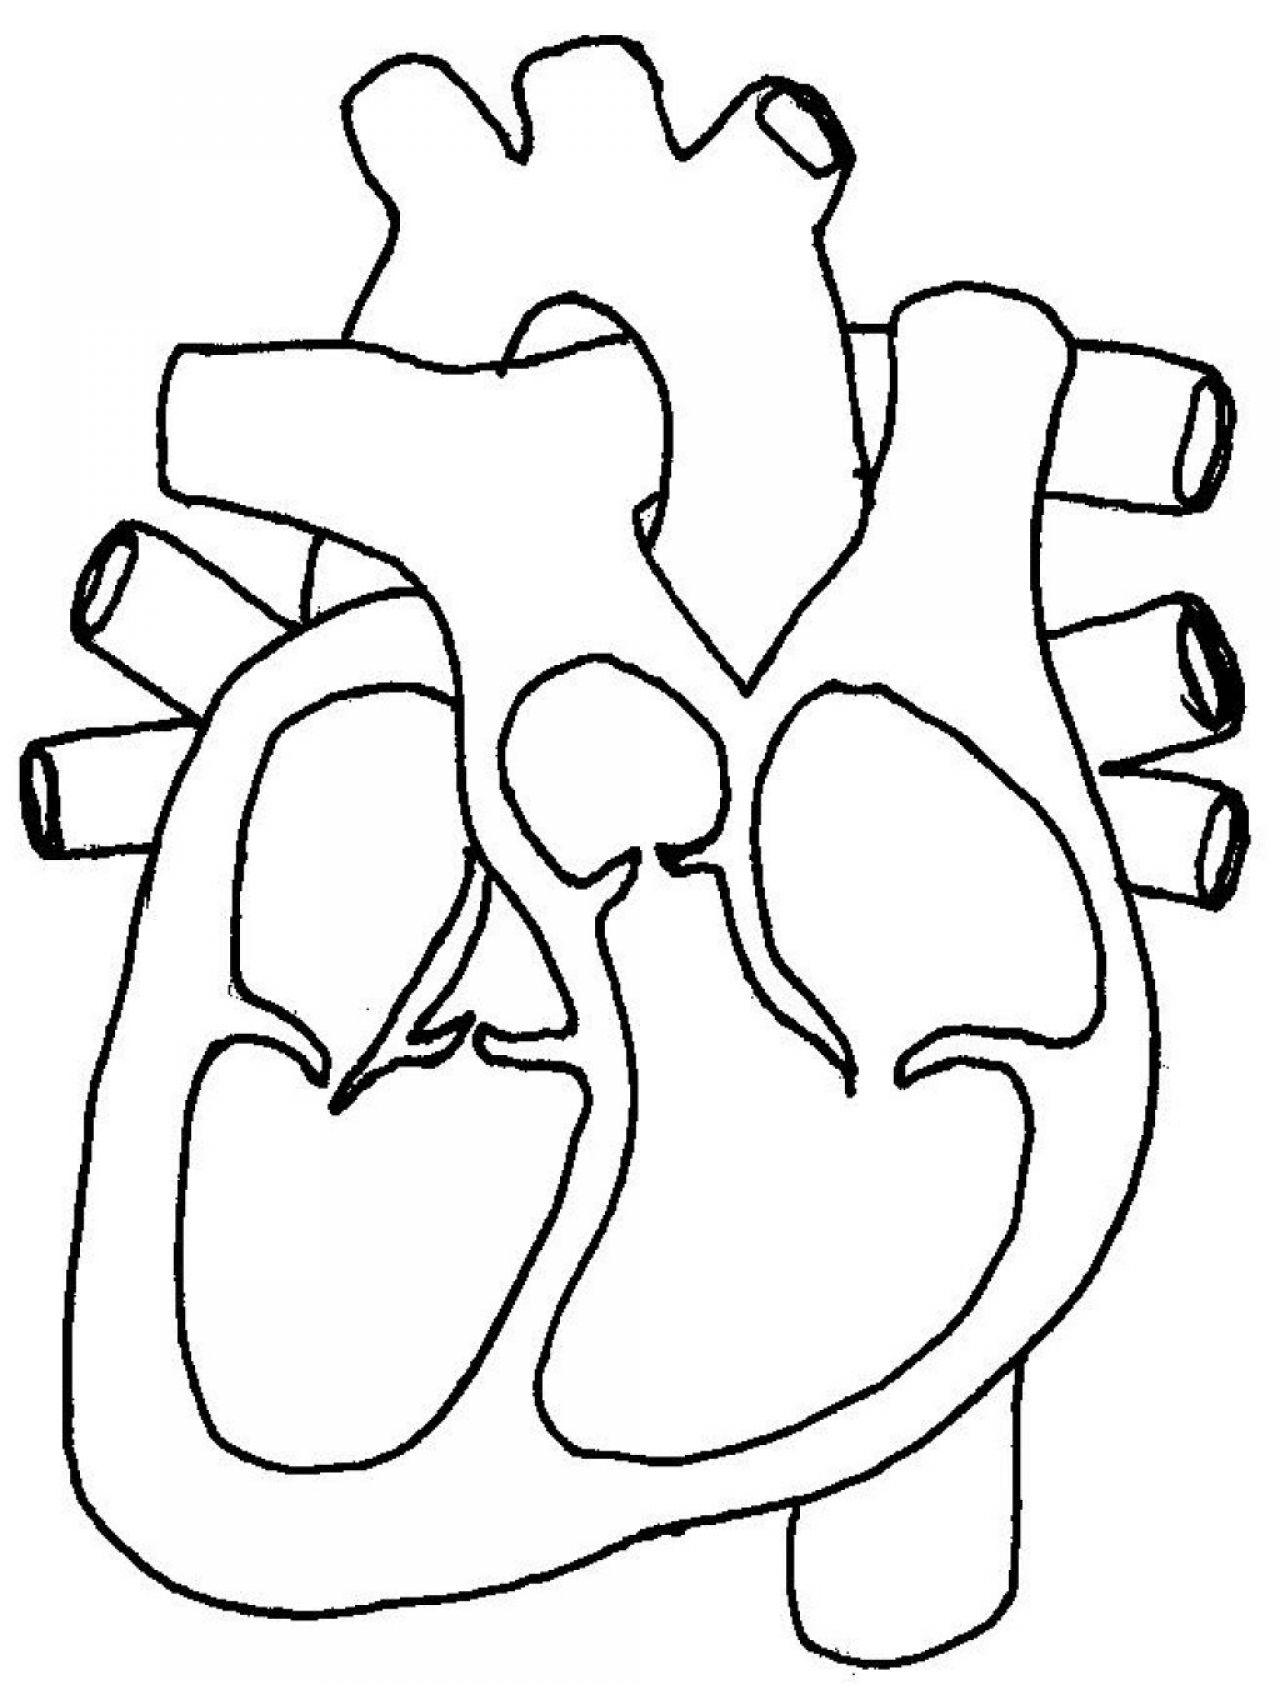 Blank Diagram Of The Heart - ClipArt Best